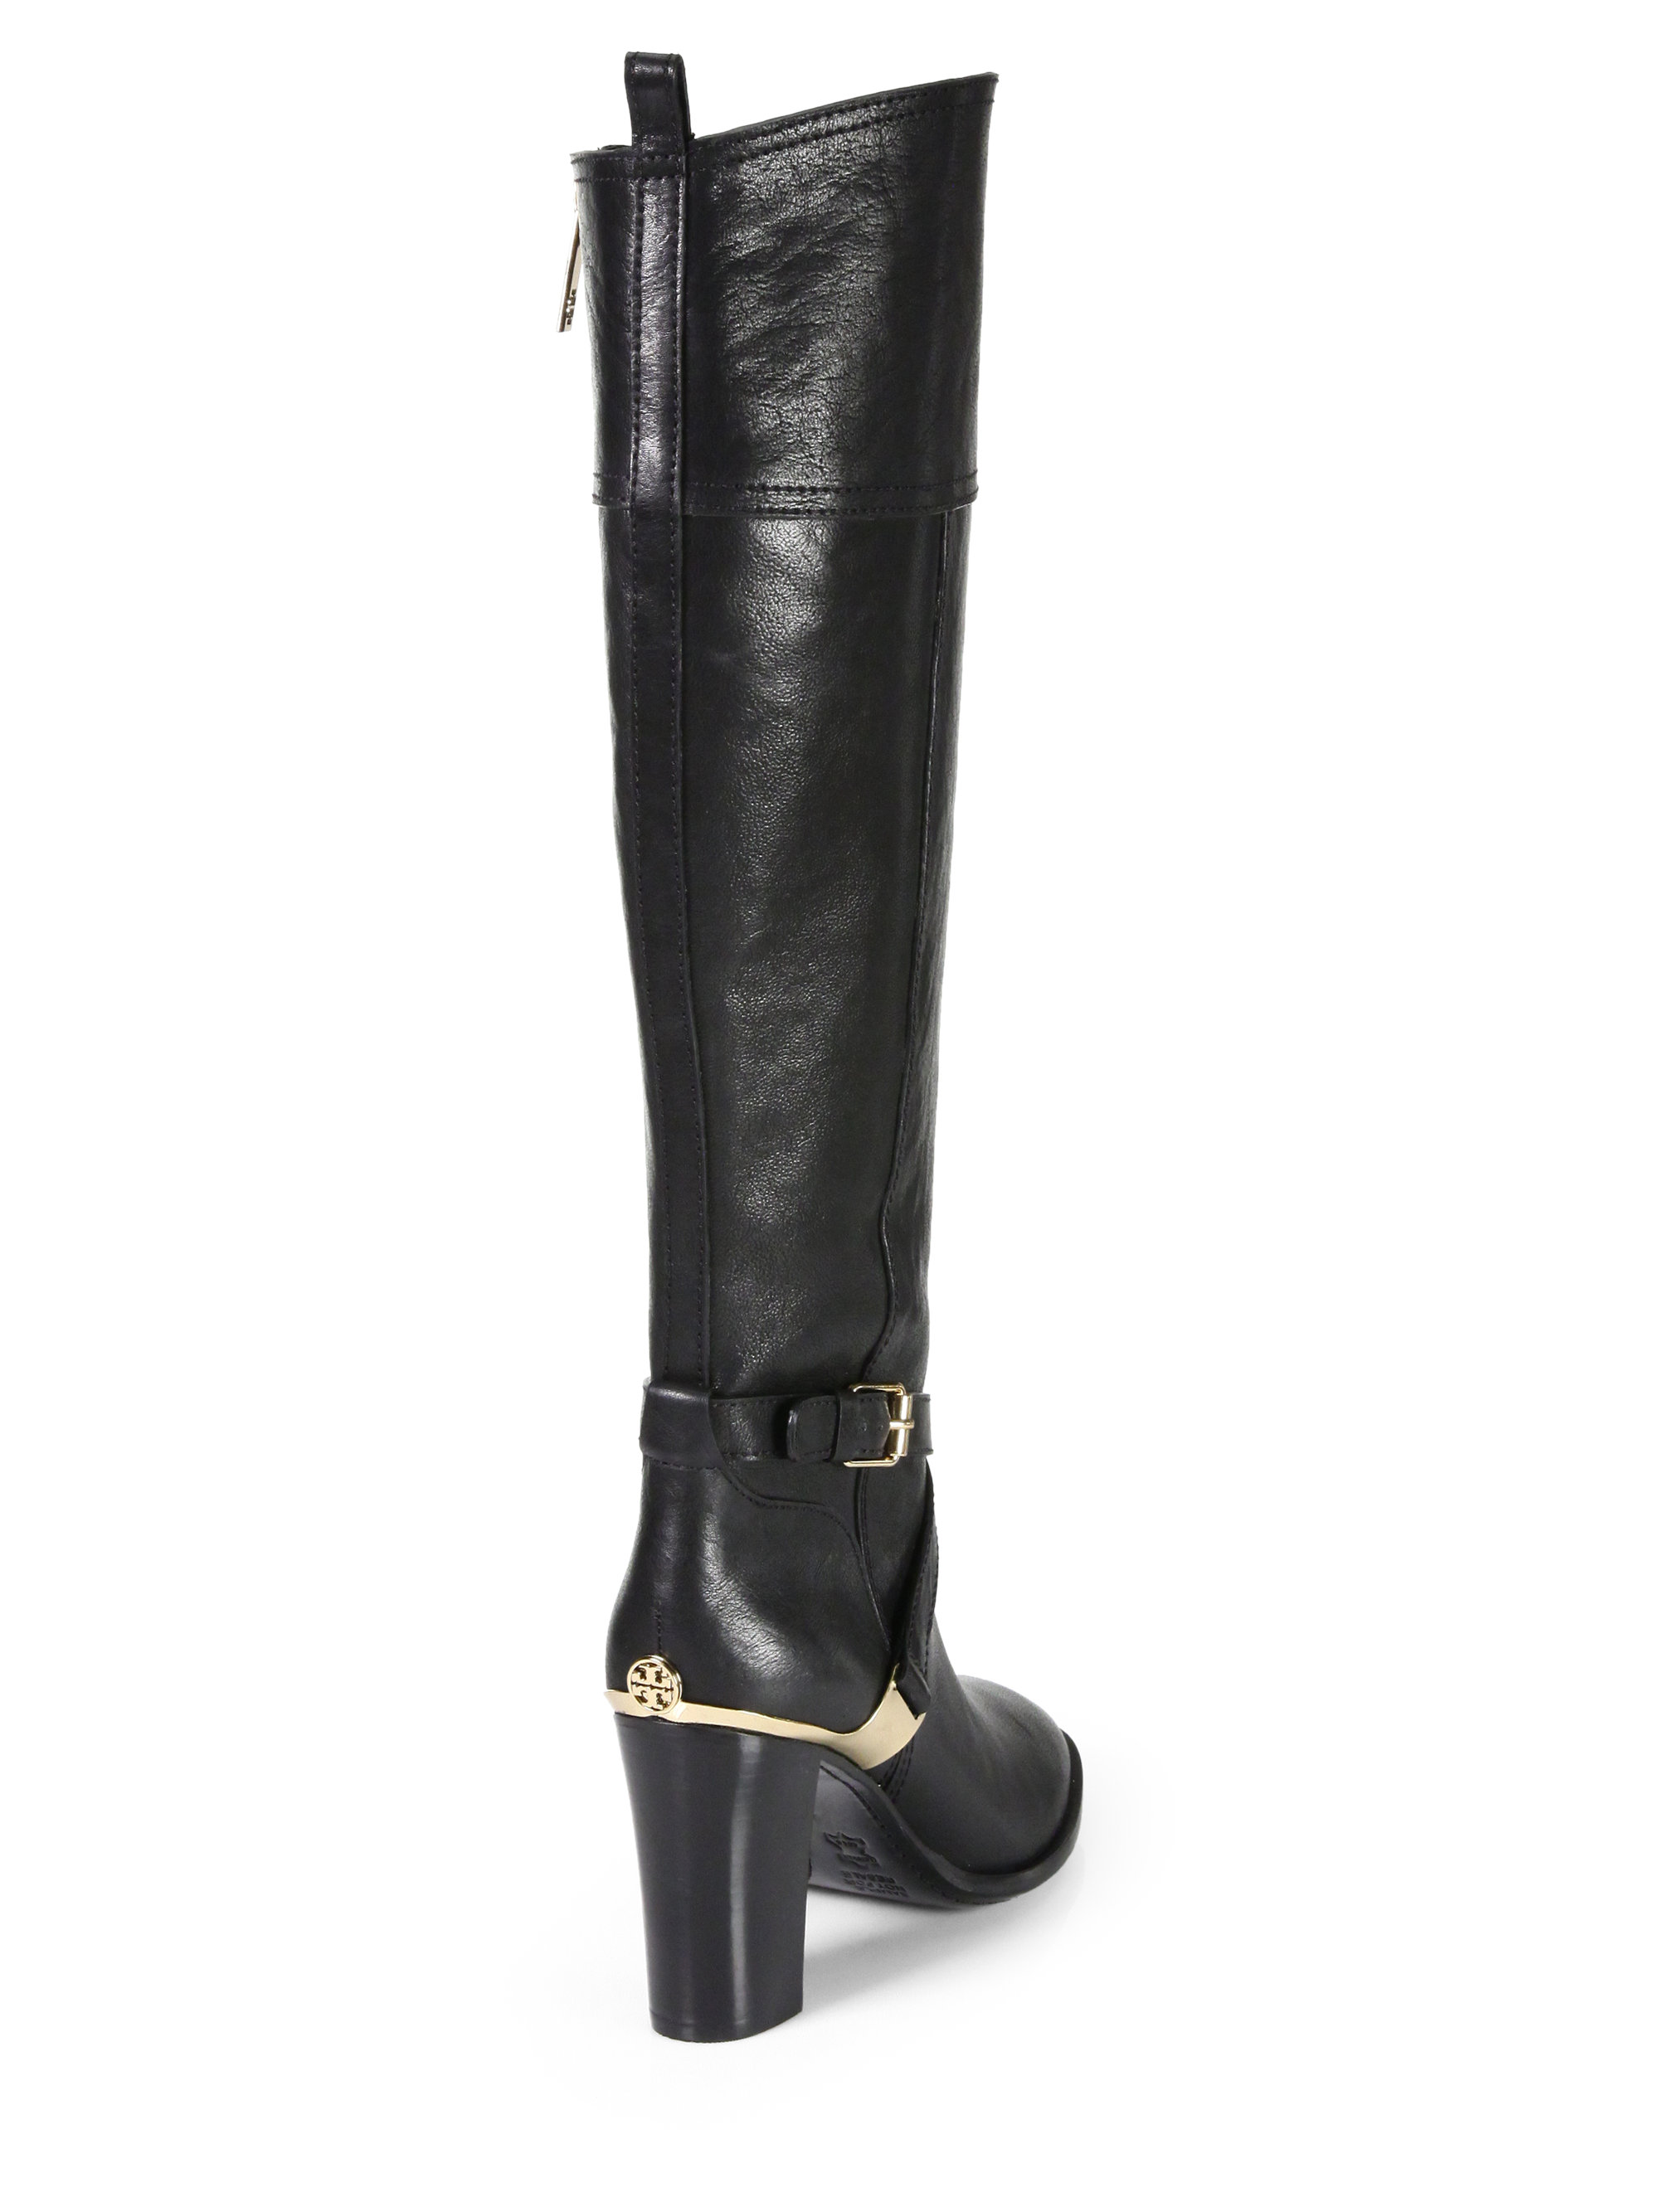 279883c6c016d3 Lyst - Tory Burch Livingston Leather Riding Boots in Black